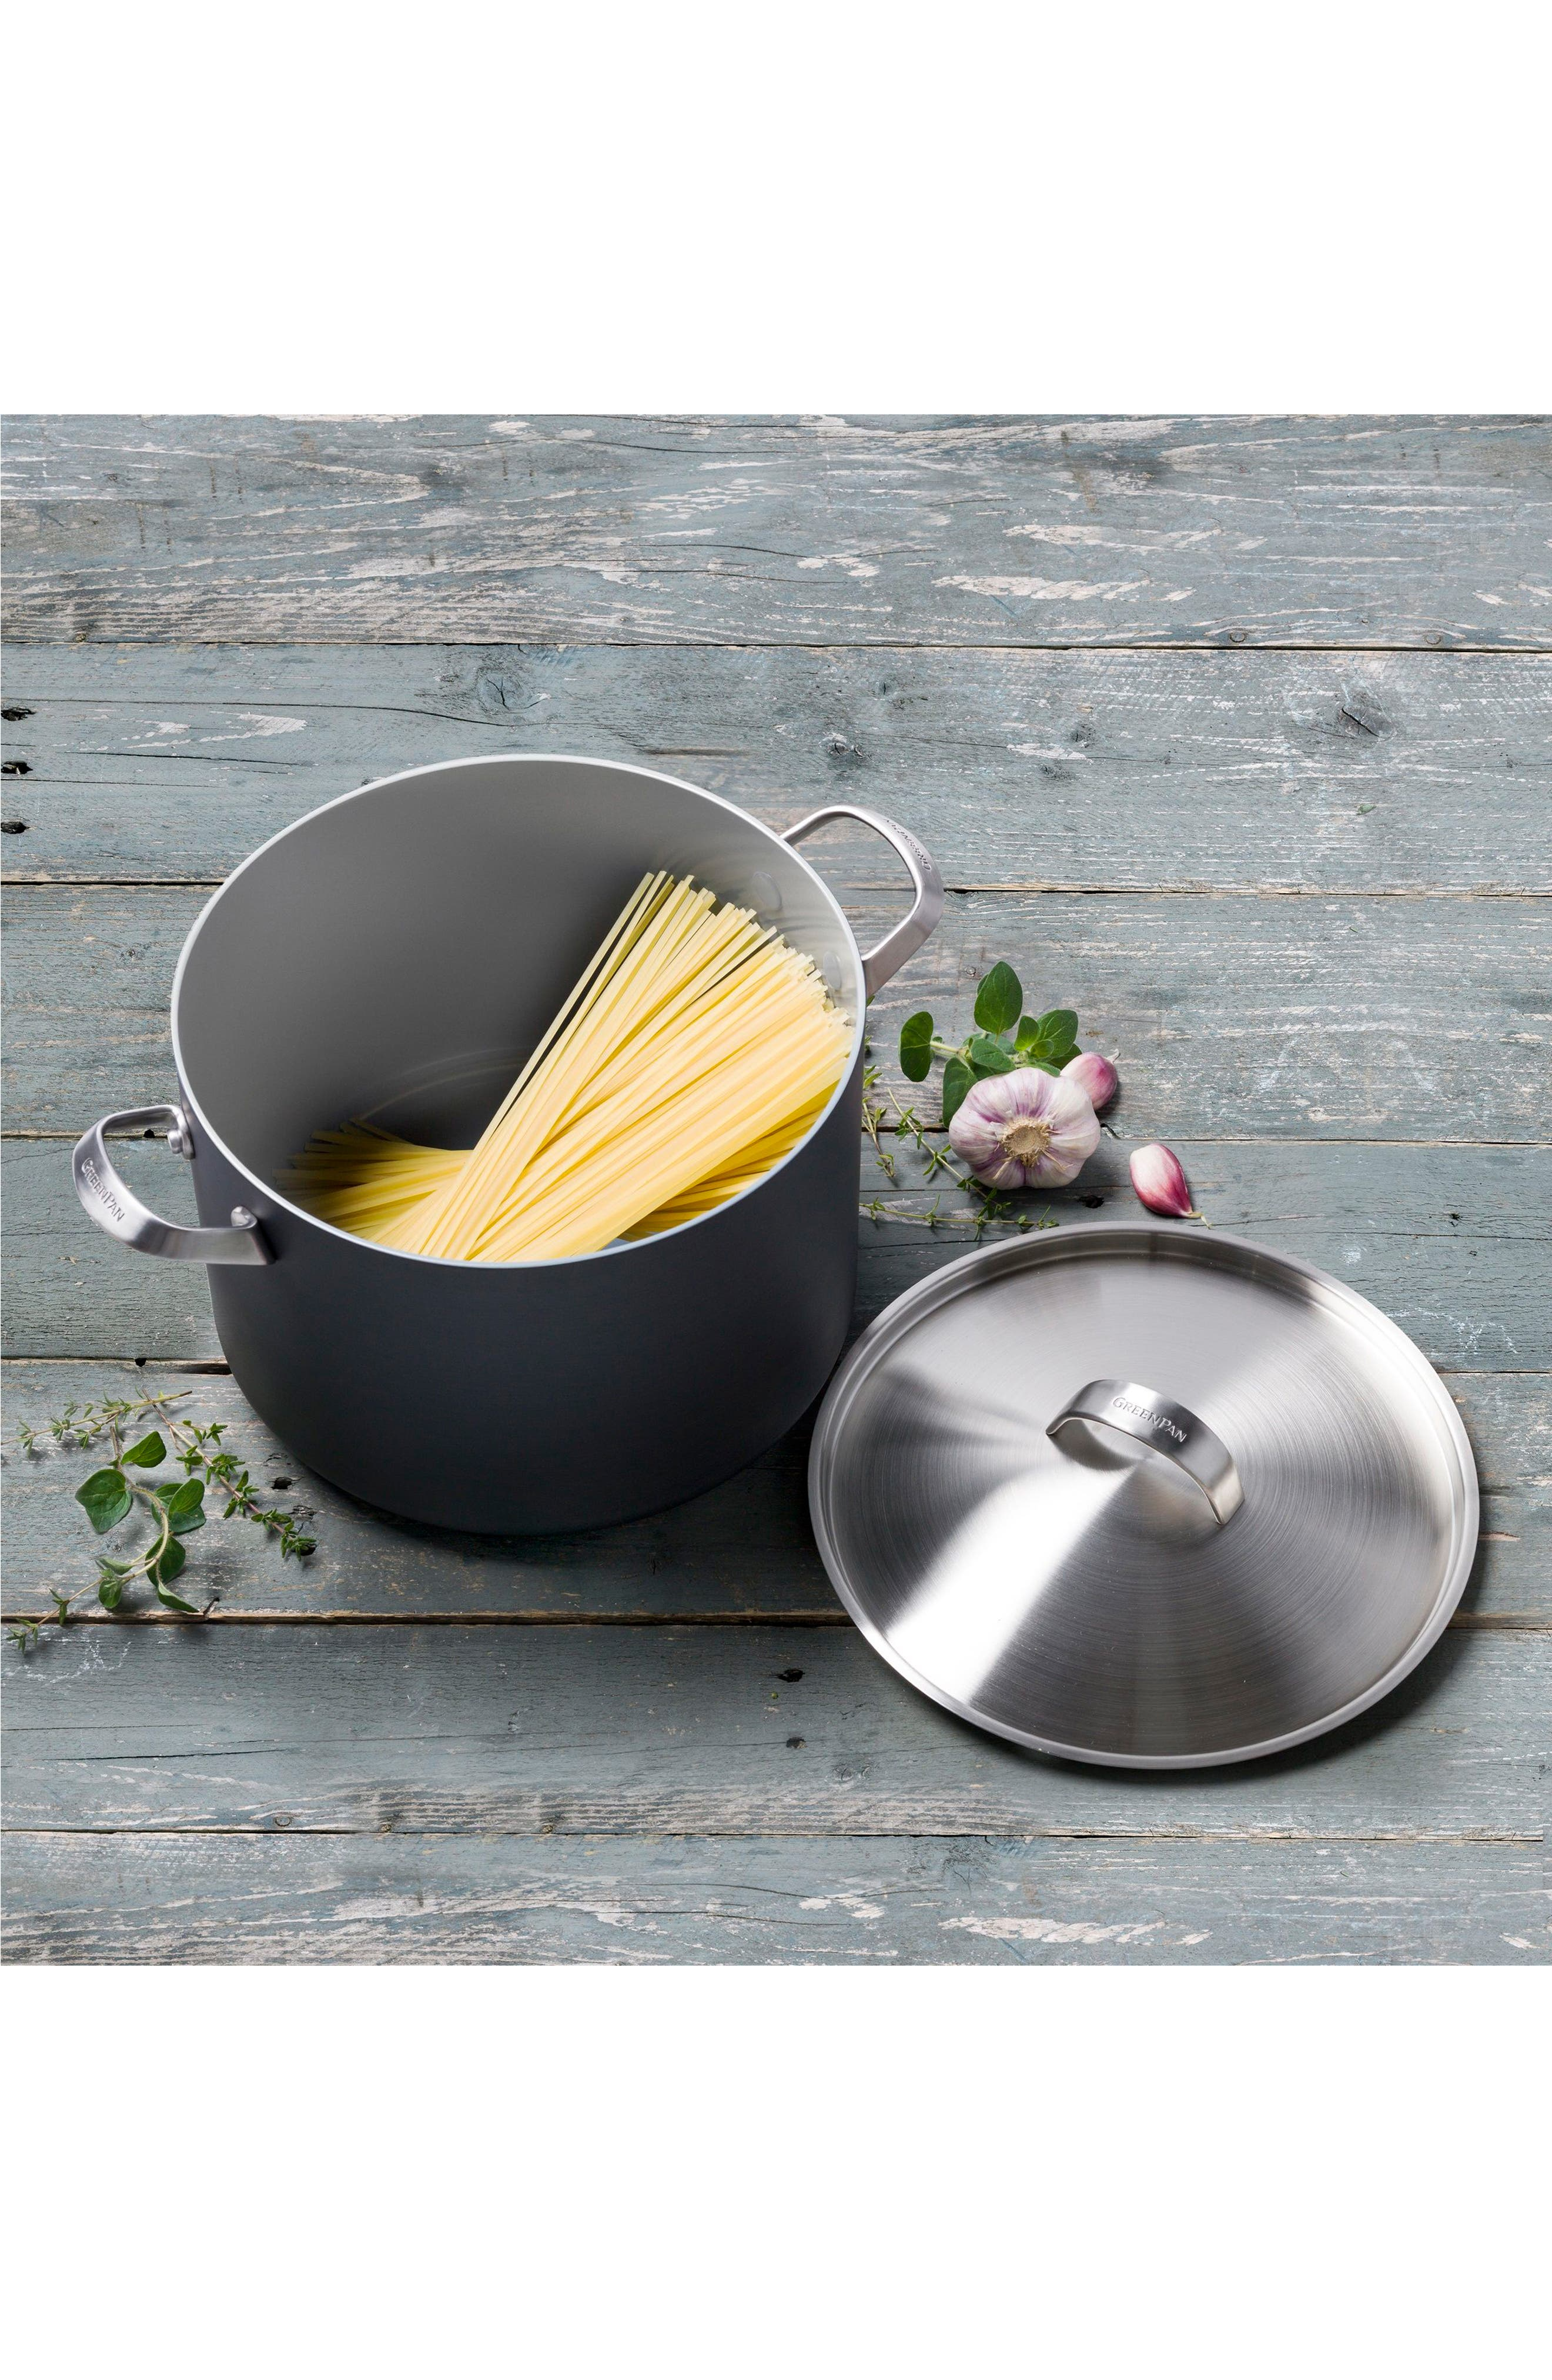 Paris 8-Quart Multilayer Stainless Steel Ceramic Nonstick Stockpot with Lid,                             Alternate thumbnail 3, color,                             GREY